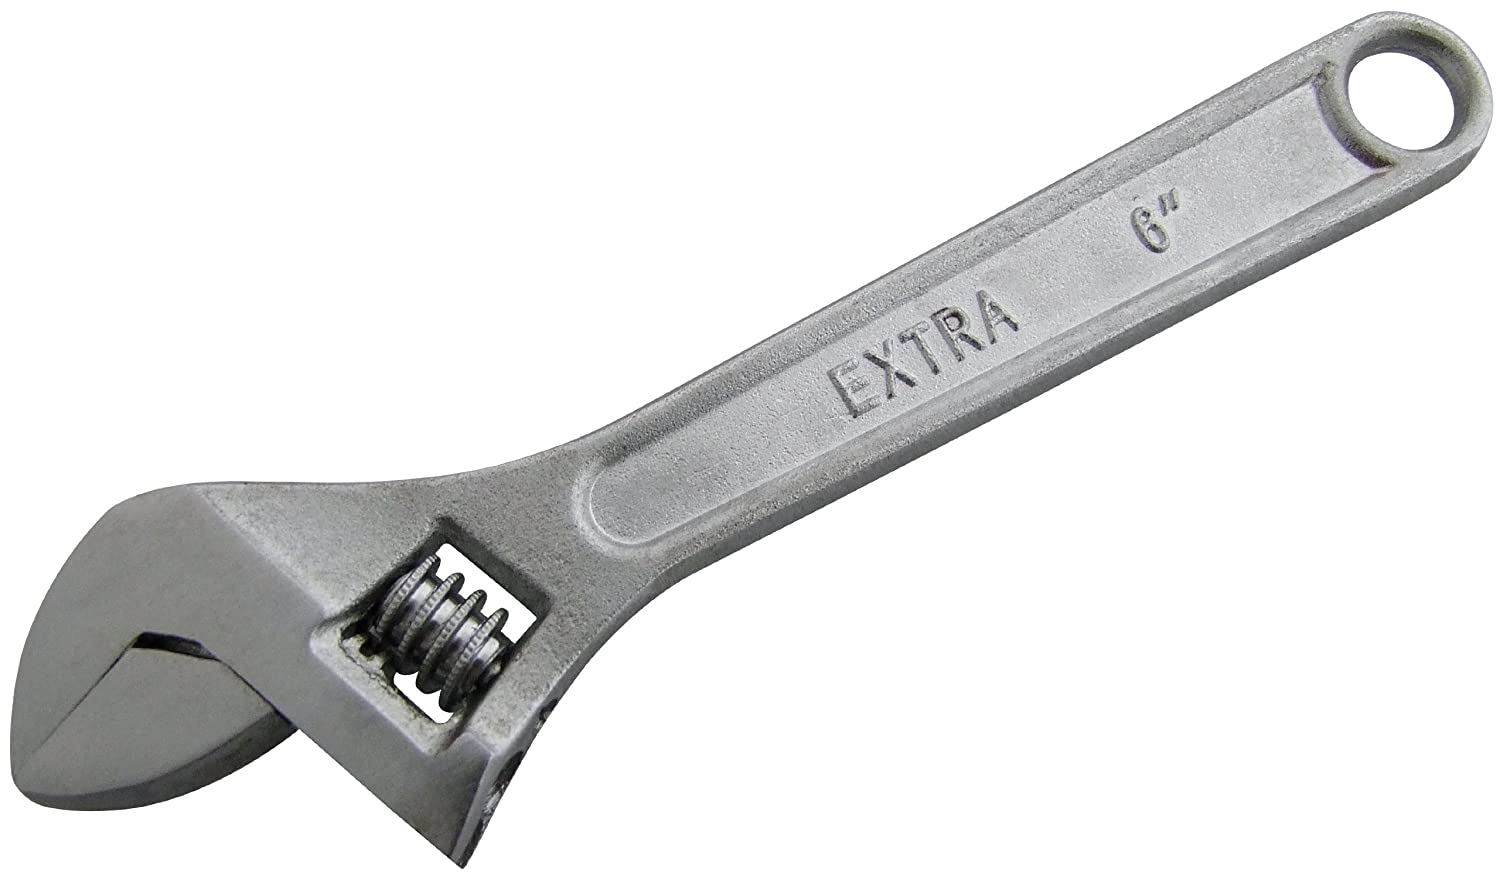 Amtech C1800 6-inch Adjustable Wrench AM-C1800